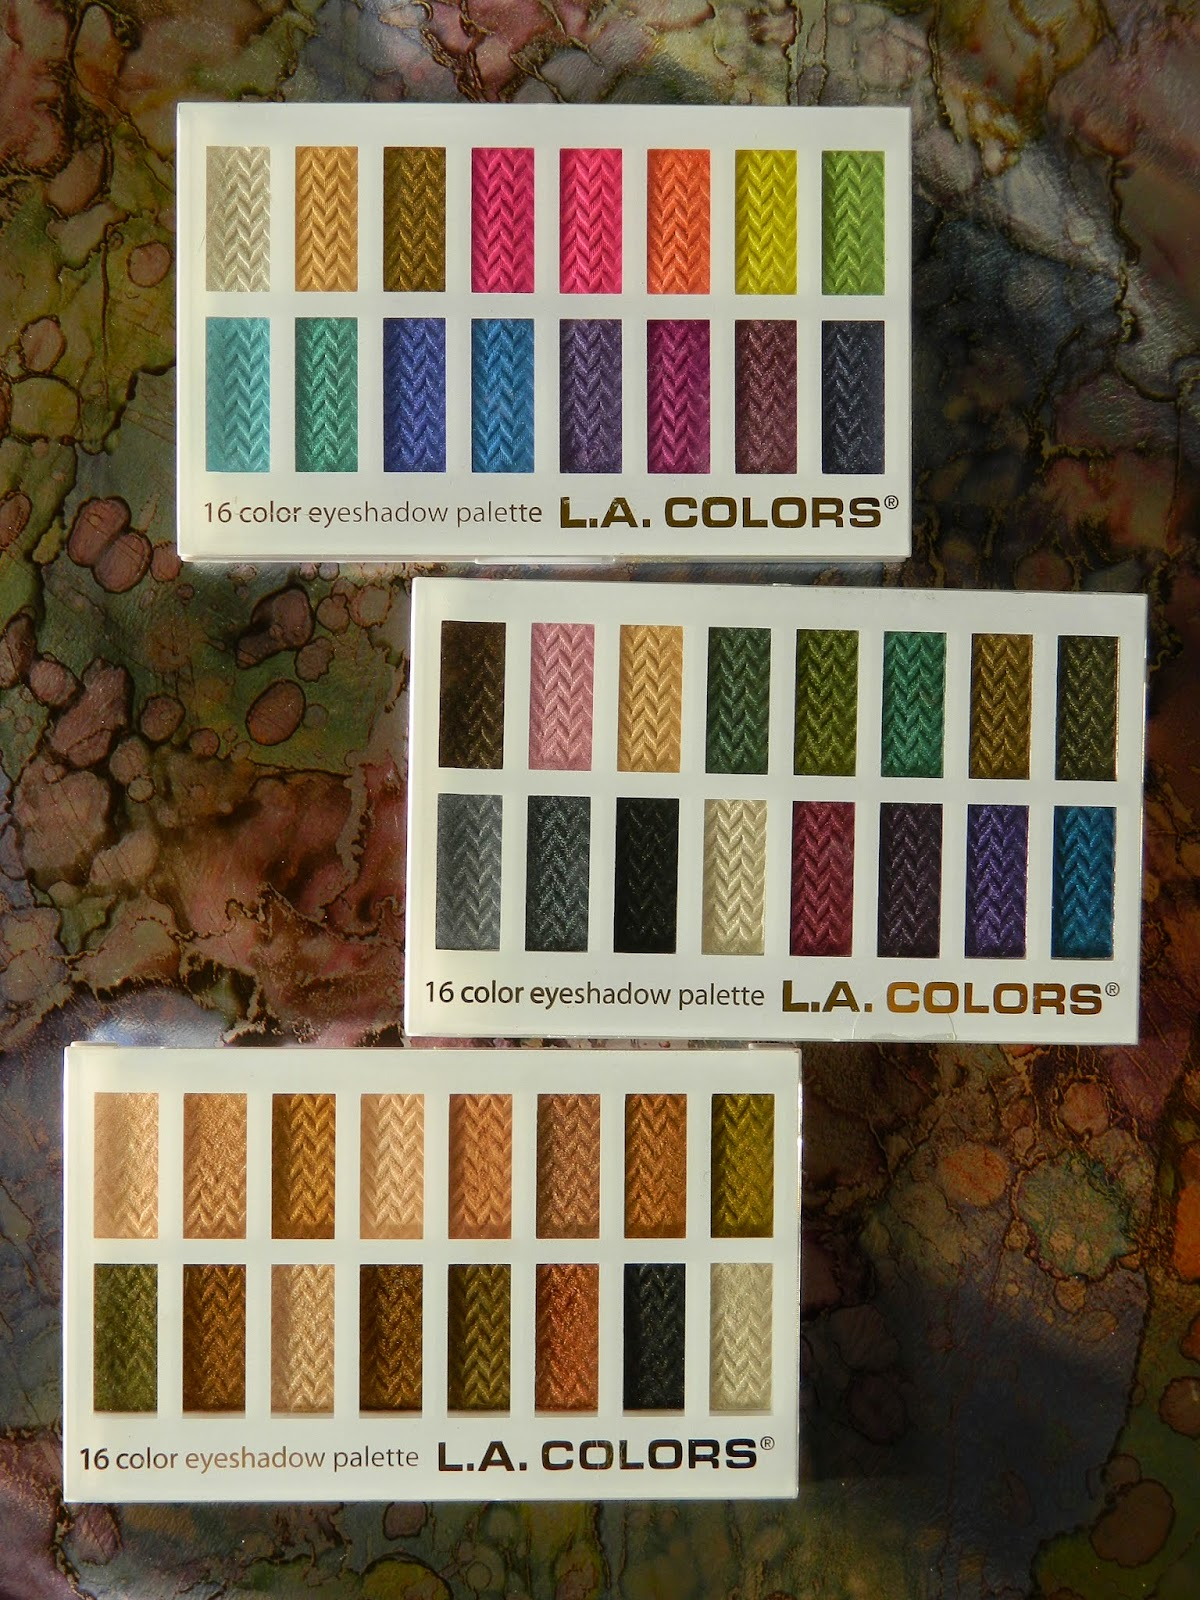 Mary's Wonderlands: Products Worth the Investment | LA Colors 16 ...